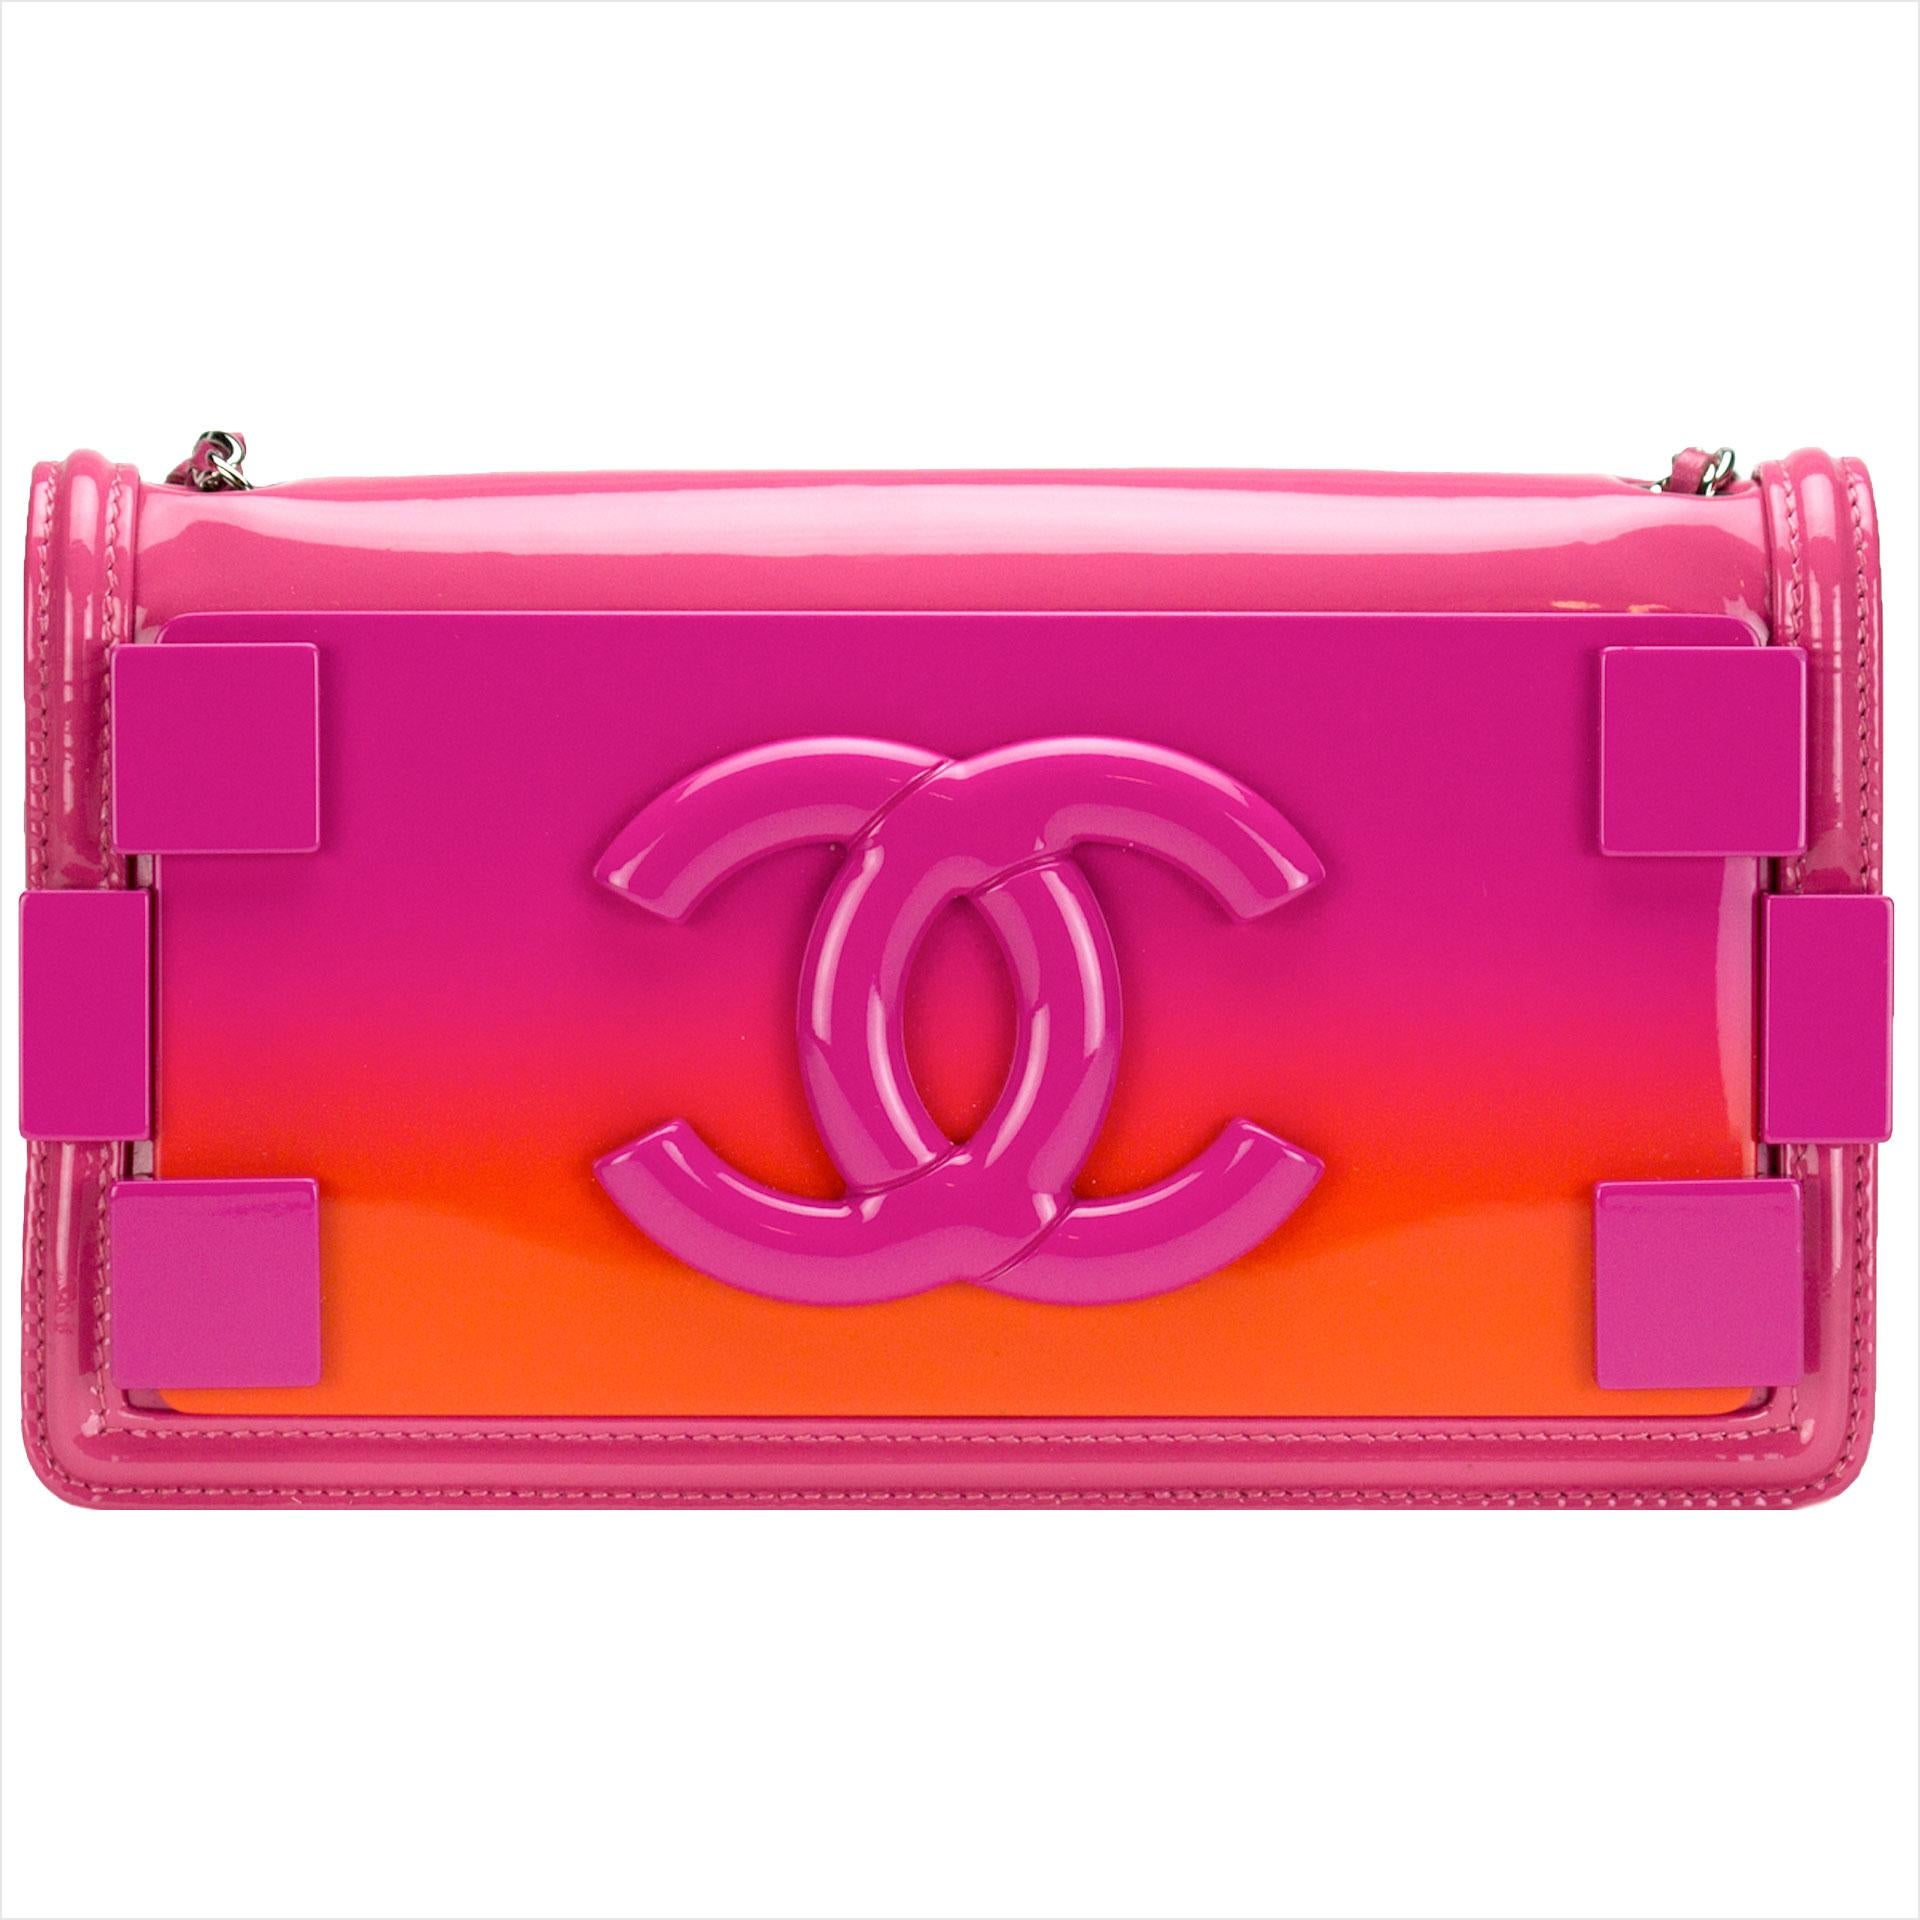 Chanel Hot Pink Ombre Patent Leather Brick Flap Crossbody Convertible Clutch